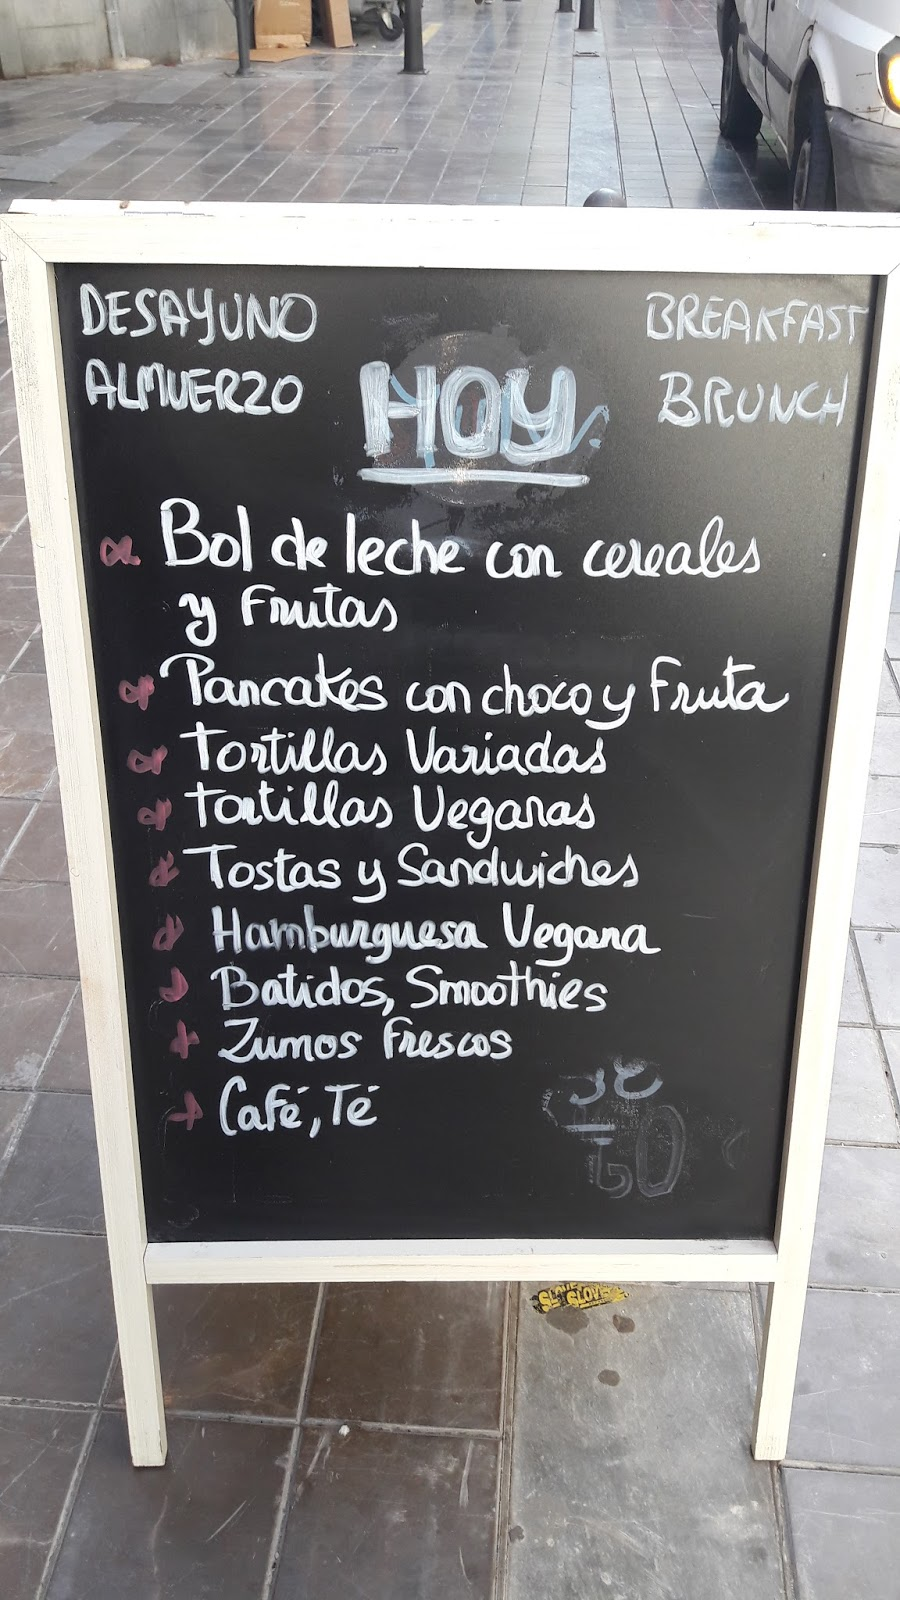 there is a good selection of dishes for breakfast brunch and lunch when you can have three courses for the bargain price of 890 euros